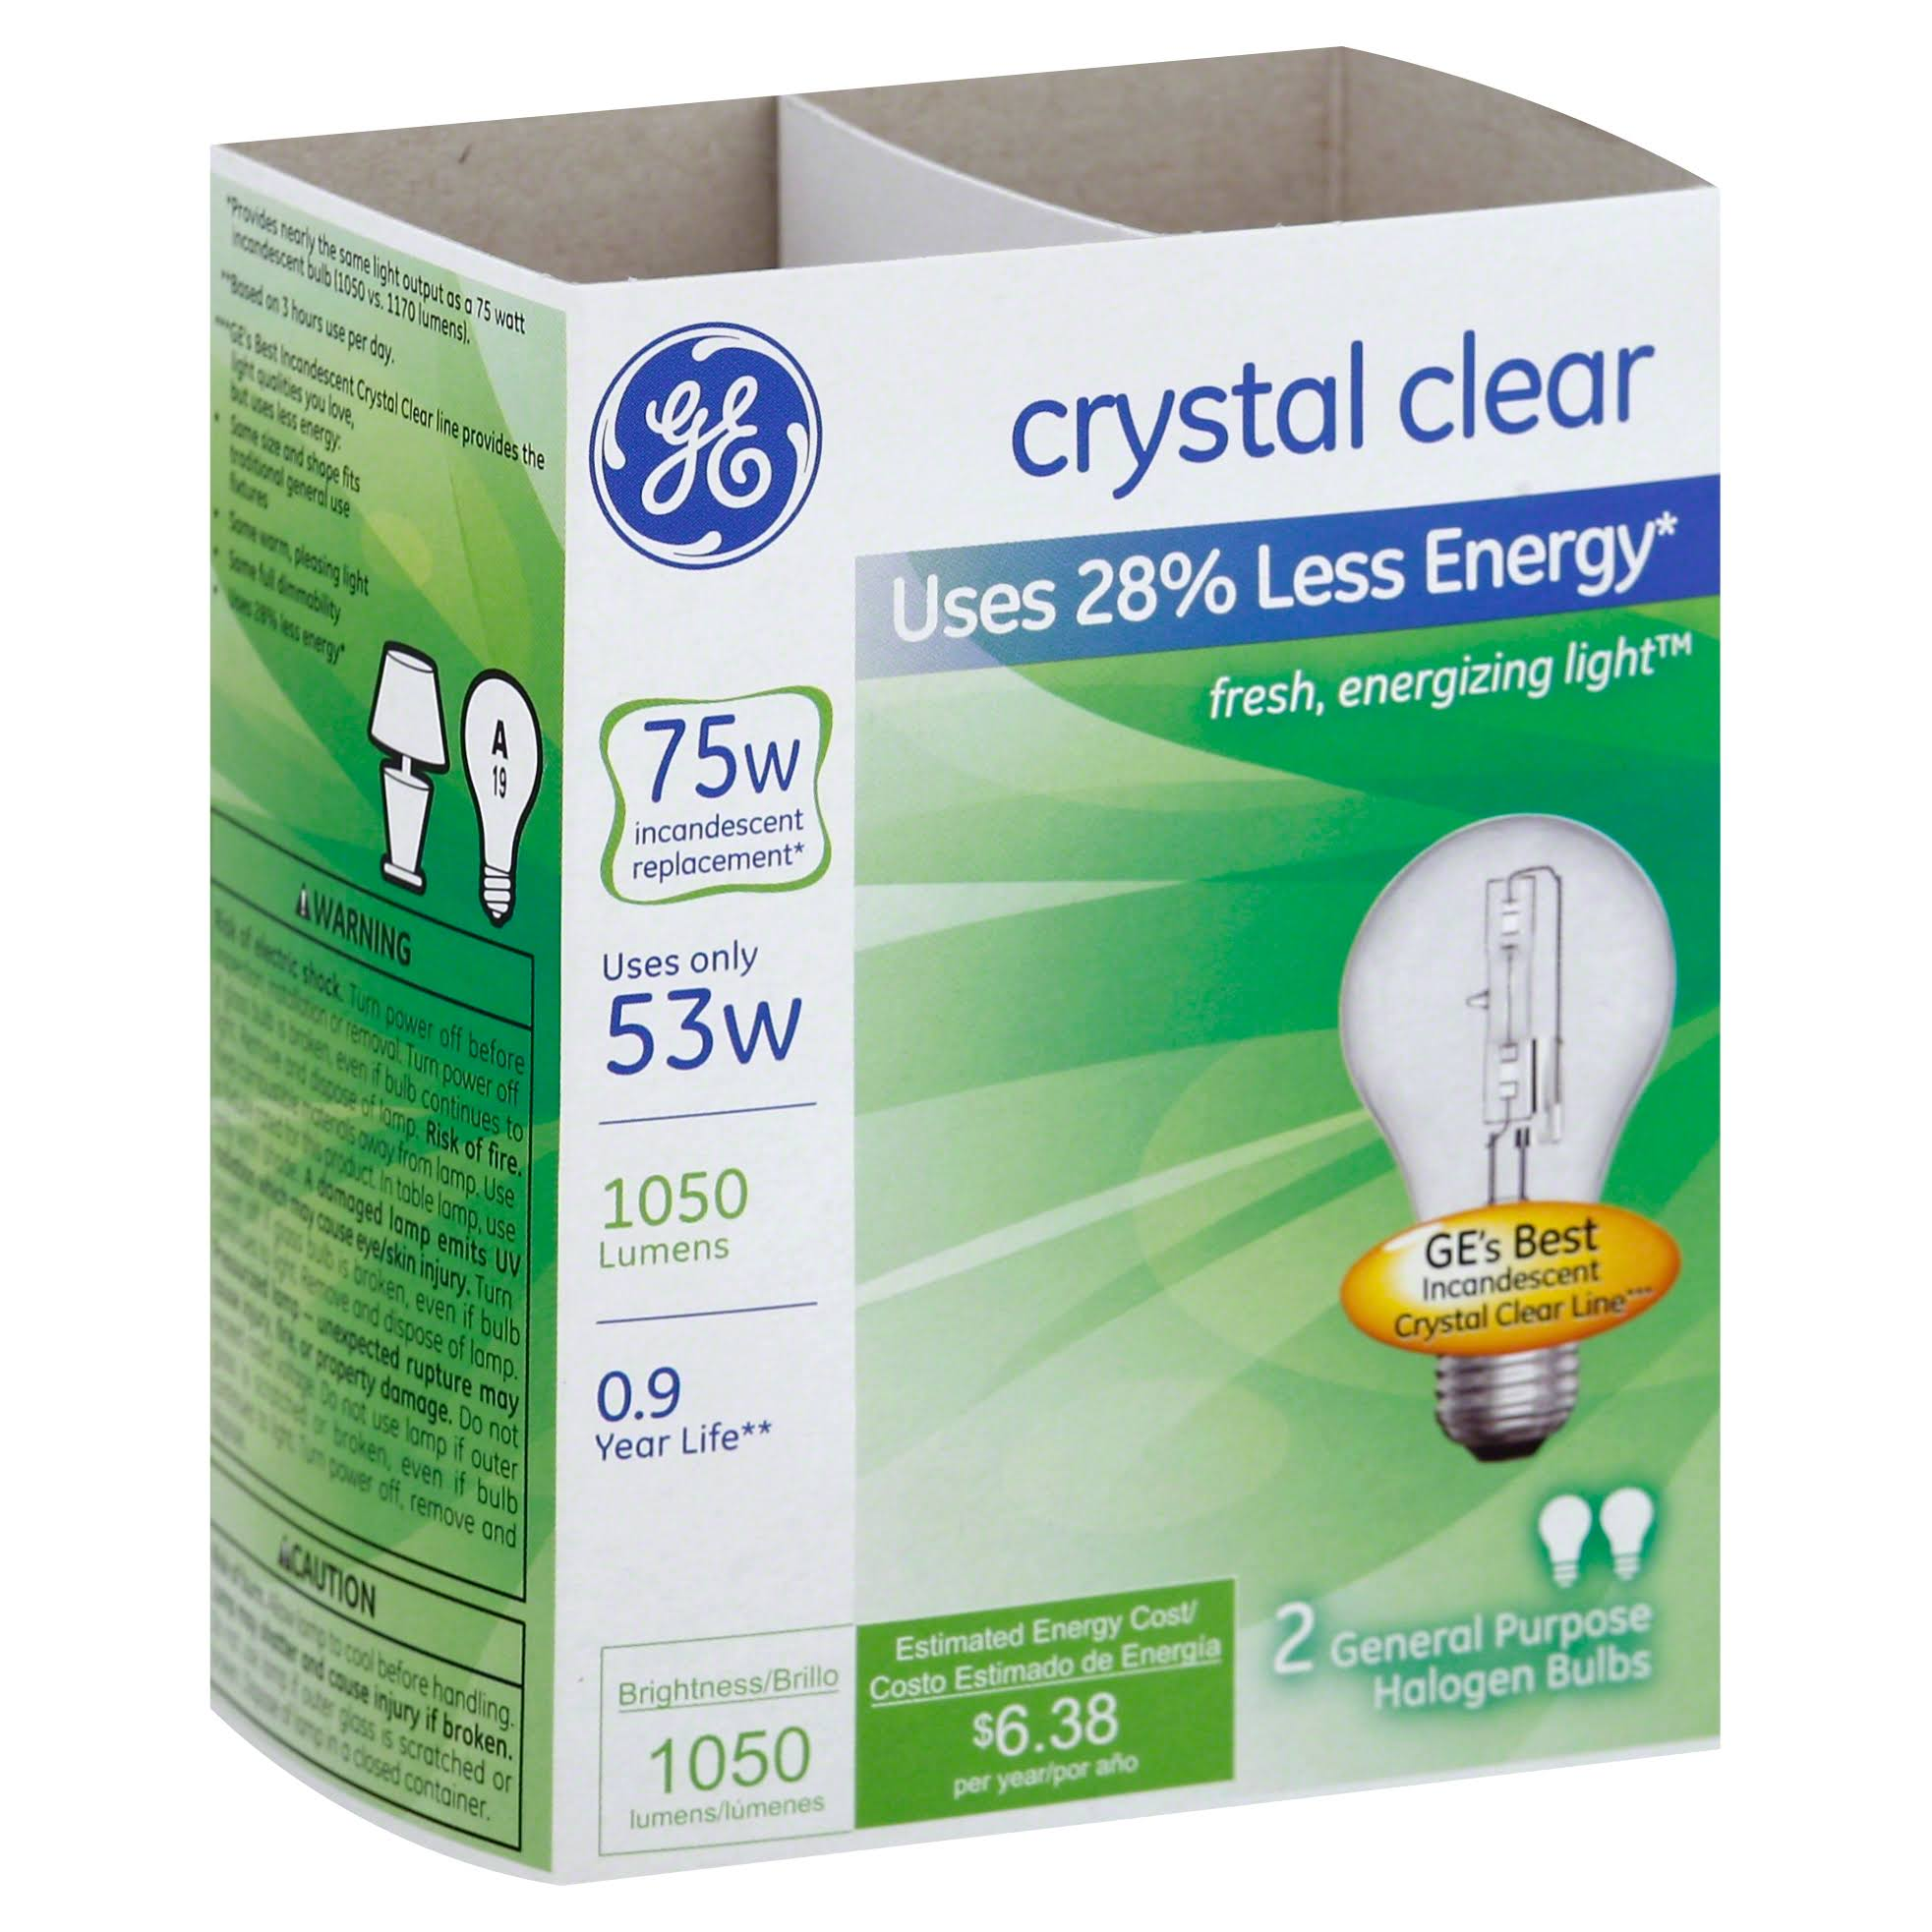 GE Lighting 78797 Halogen Light Bulbs - Clear, 53w, 2 Pack